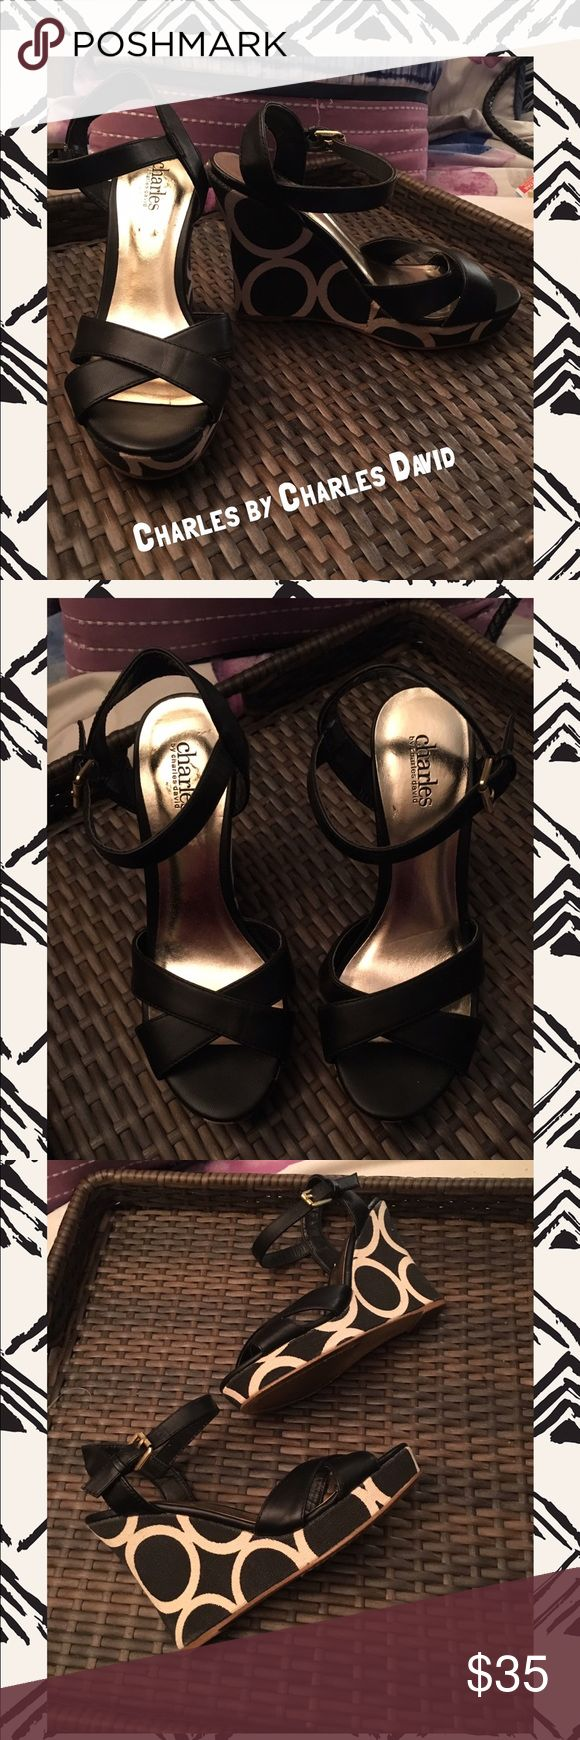 "Charles by Charles David Black Beige Wedge SZ 6.5 Excellent Condition  Beautiful Pair of Black with Beige Wedges.  Crisscross Straps in the Front. Back Strap with Buckle. The Wedge is 4 1/2"" in Height.. Wedge is Black with Beige Circles. Gives them a Really Nice Look💕. Leather Upper.  Size 6.5 Charles David Shoes Wedges"